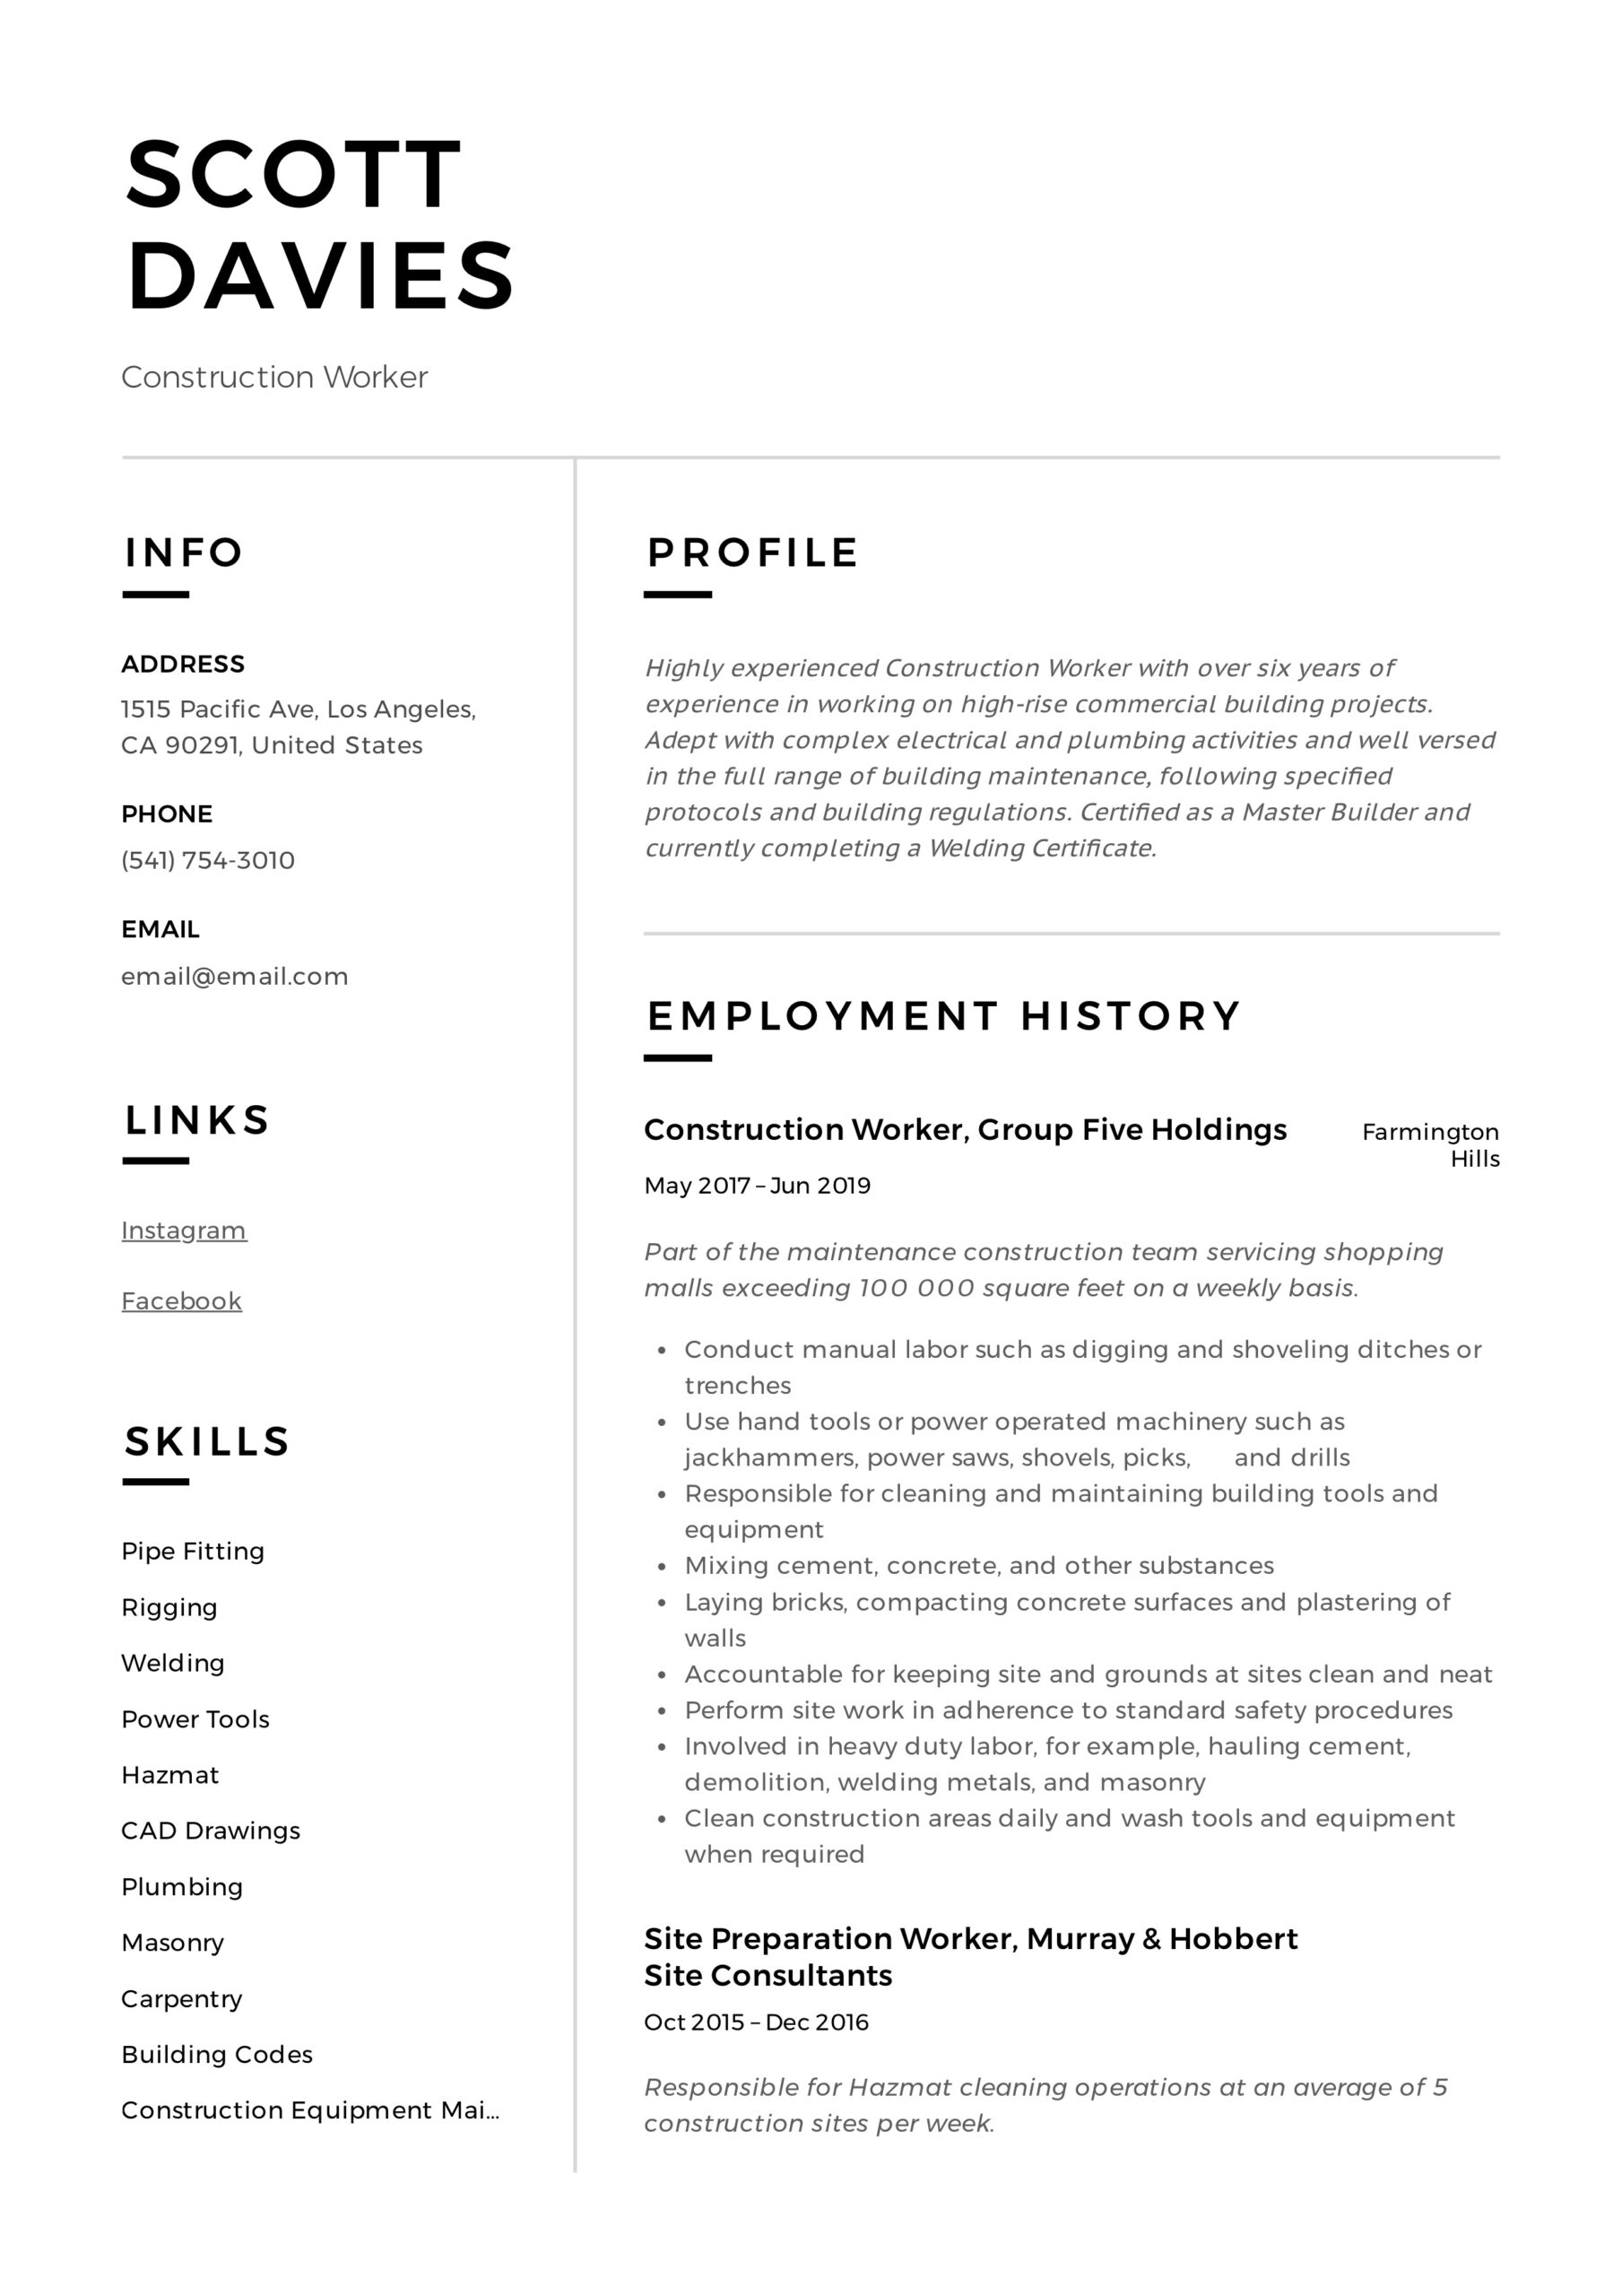 construction worker resume writing guide templates sample for building contractor Resume Sample Resume For Building Contractor